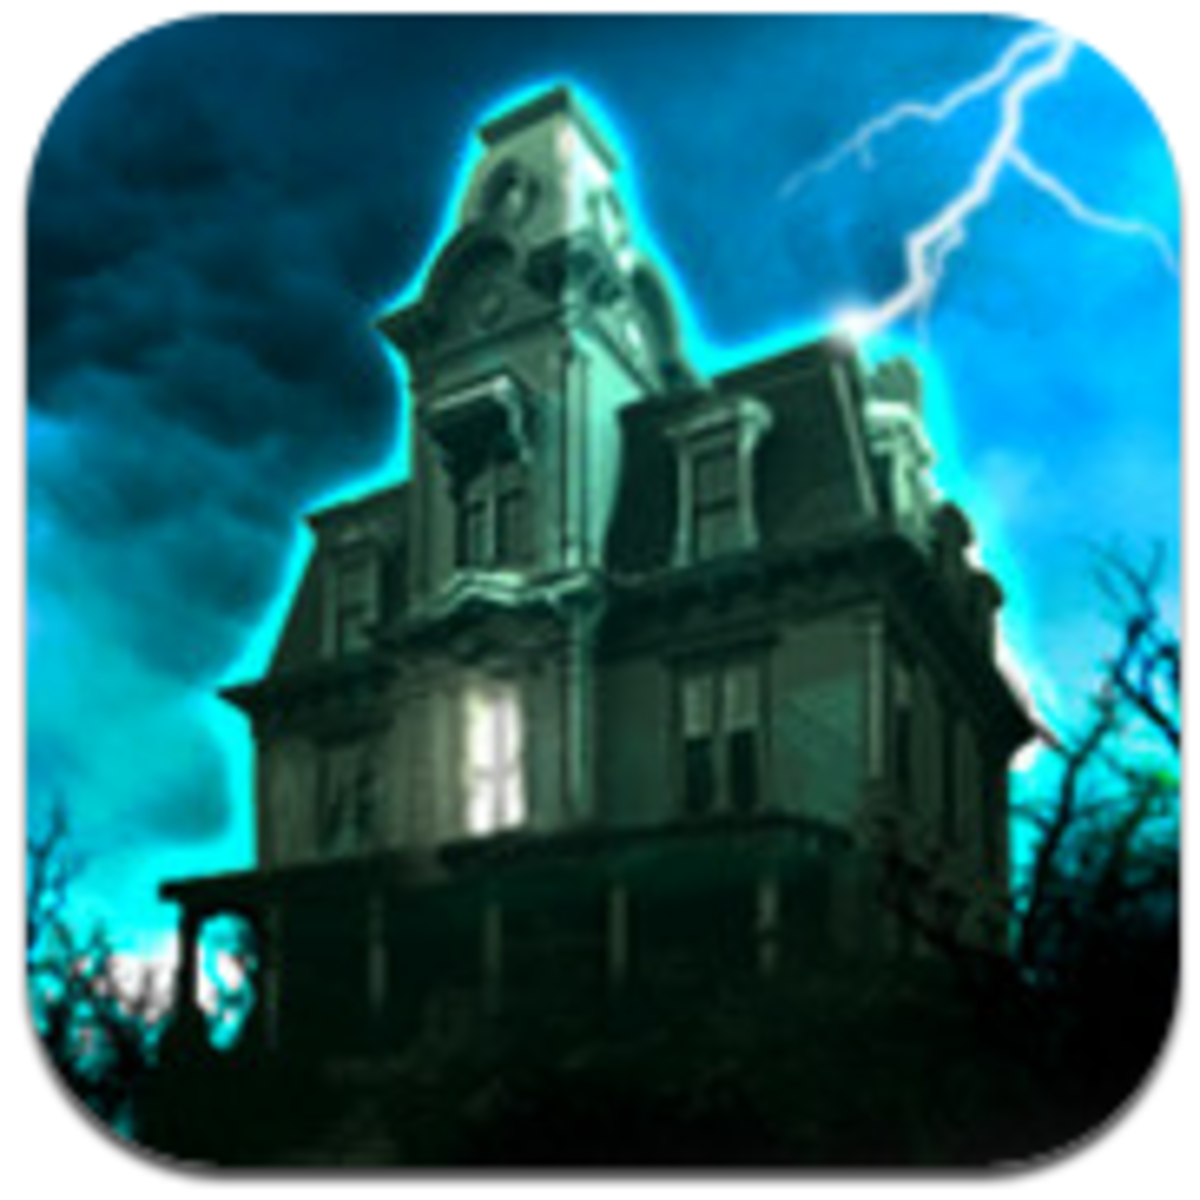 LIKE MANOR GRISLY GAMES IPHONE